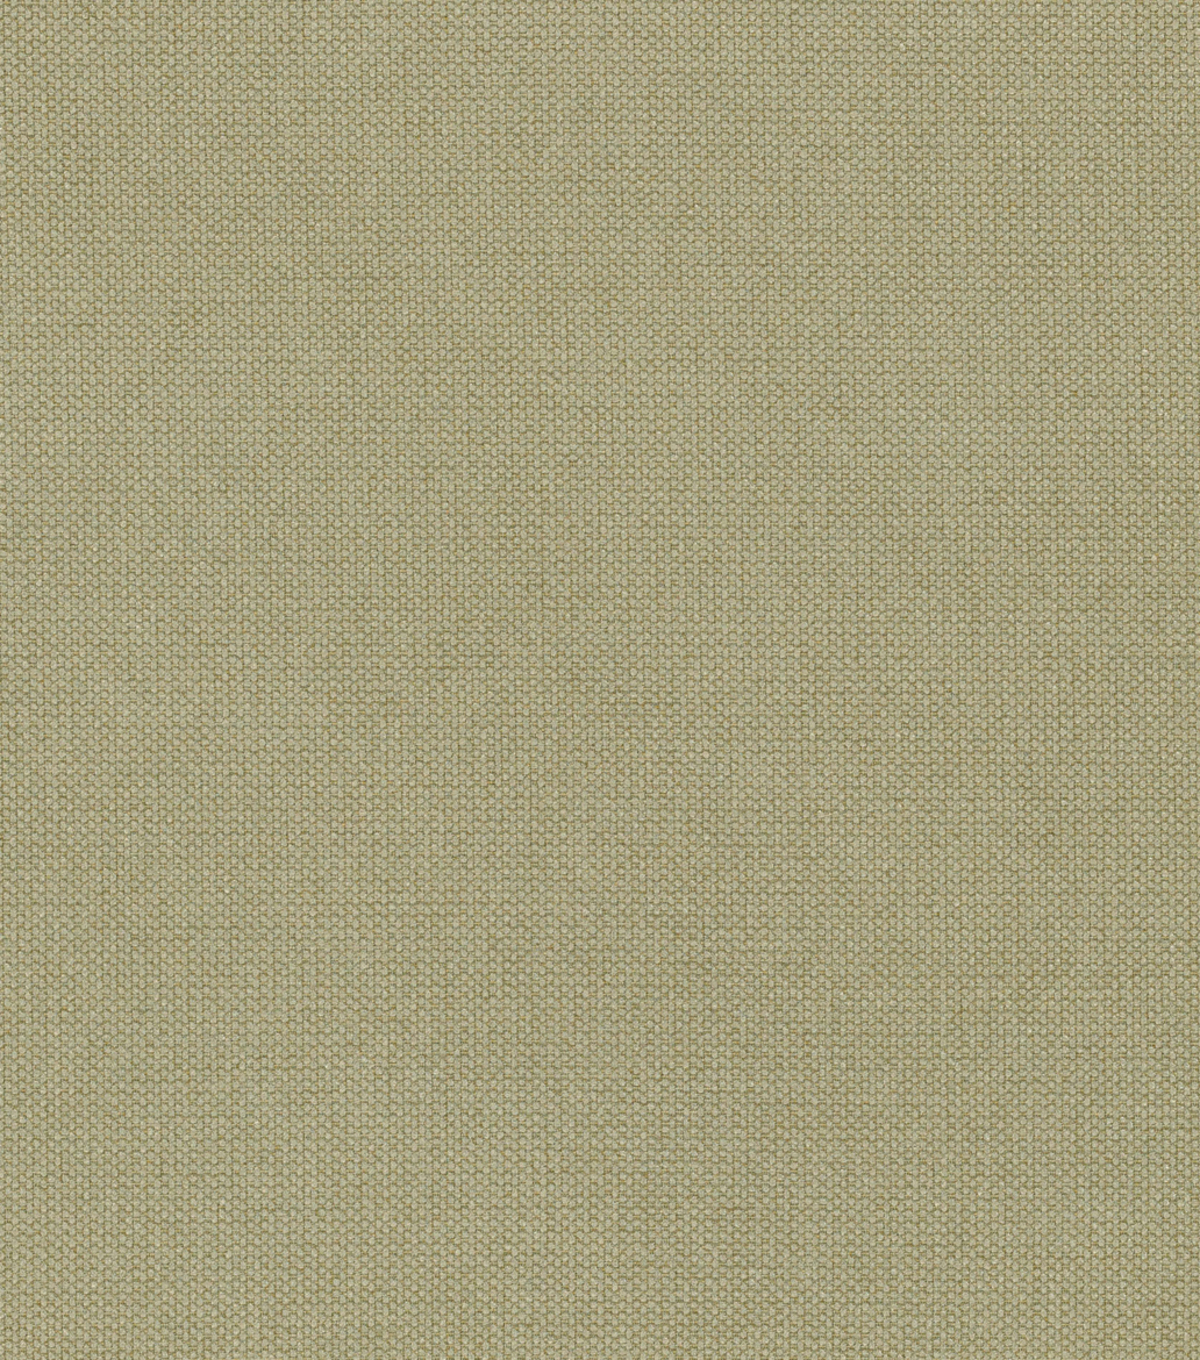 Home Decor 8\u0022x8\u0022 Fabric Swatch-Motown Eucalyptus